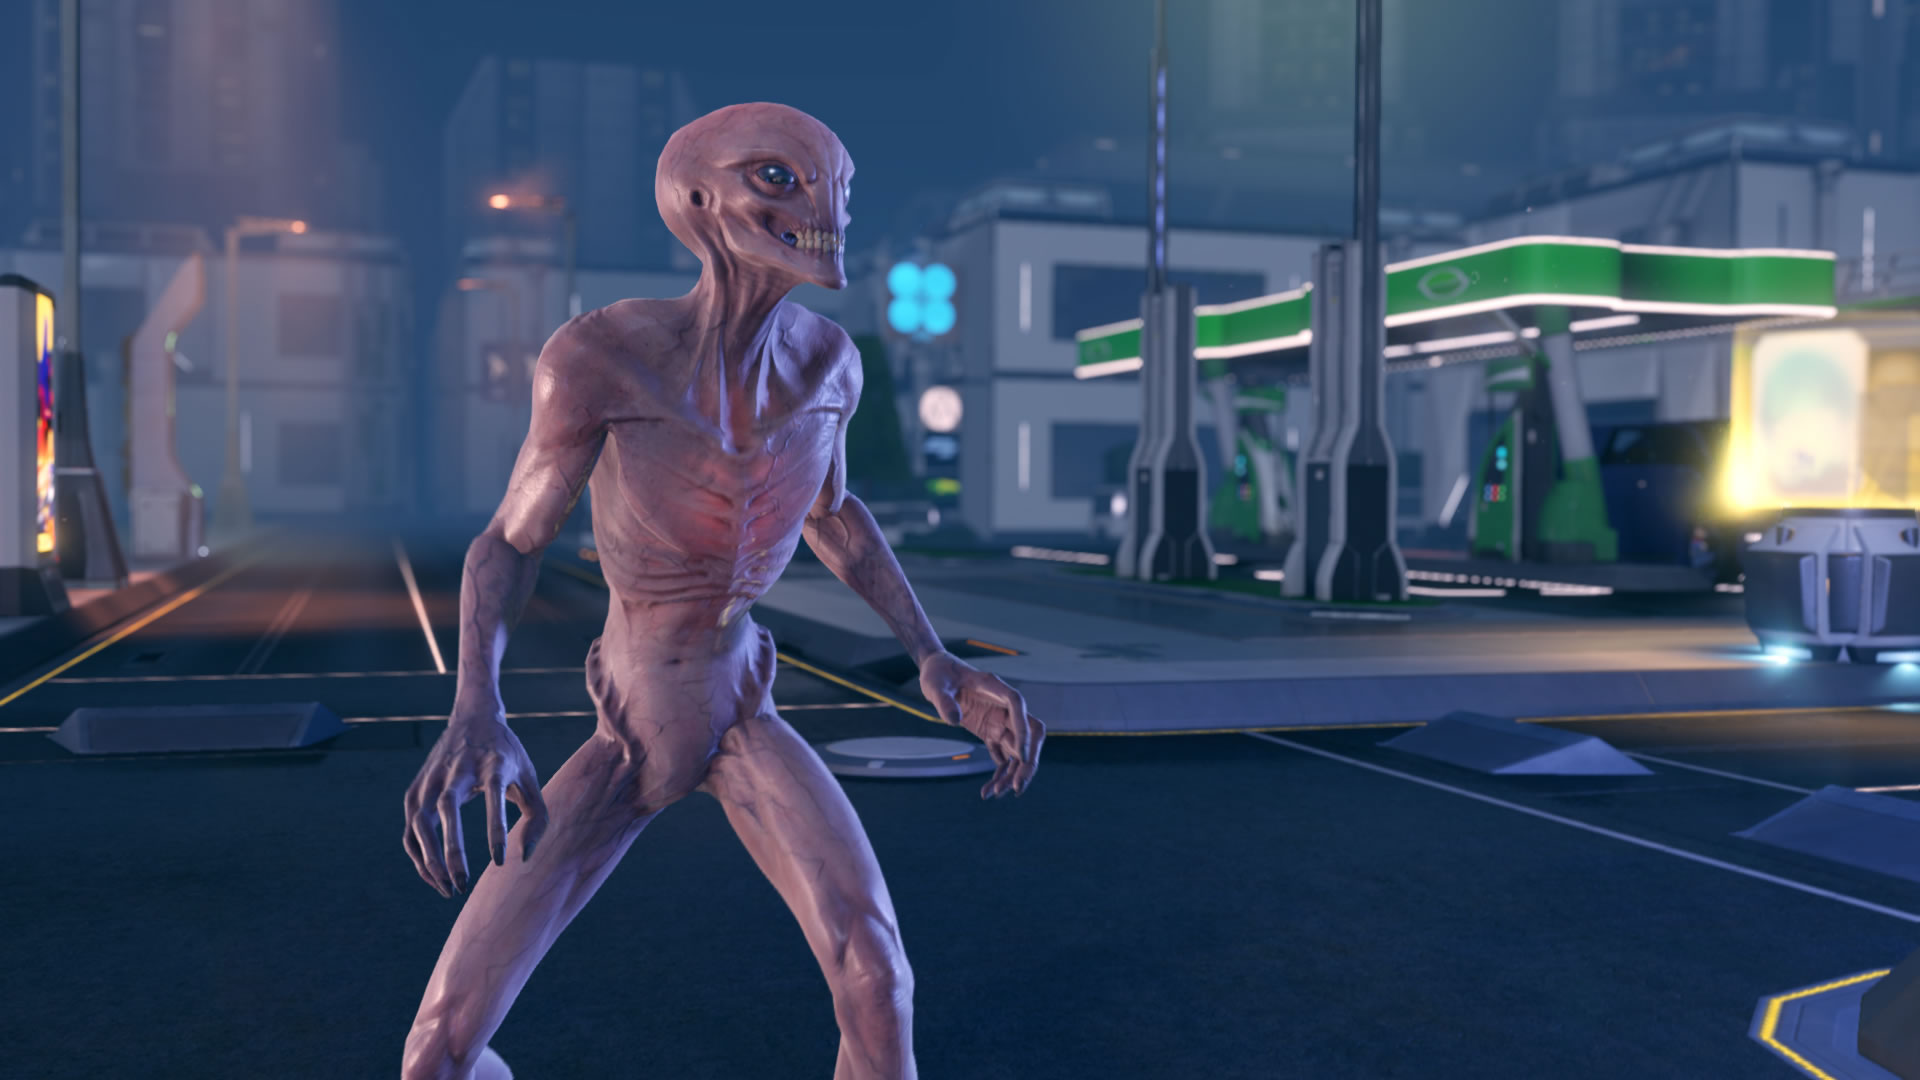 KR - XCOM 2's Sectoid Poses a Familiar Threat with New Genetic